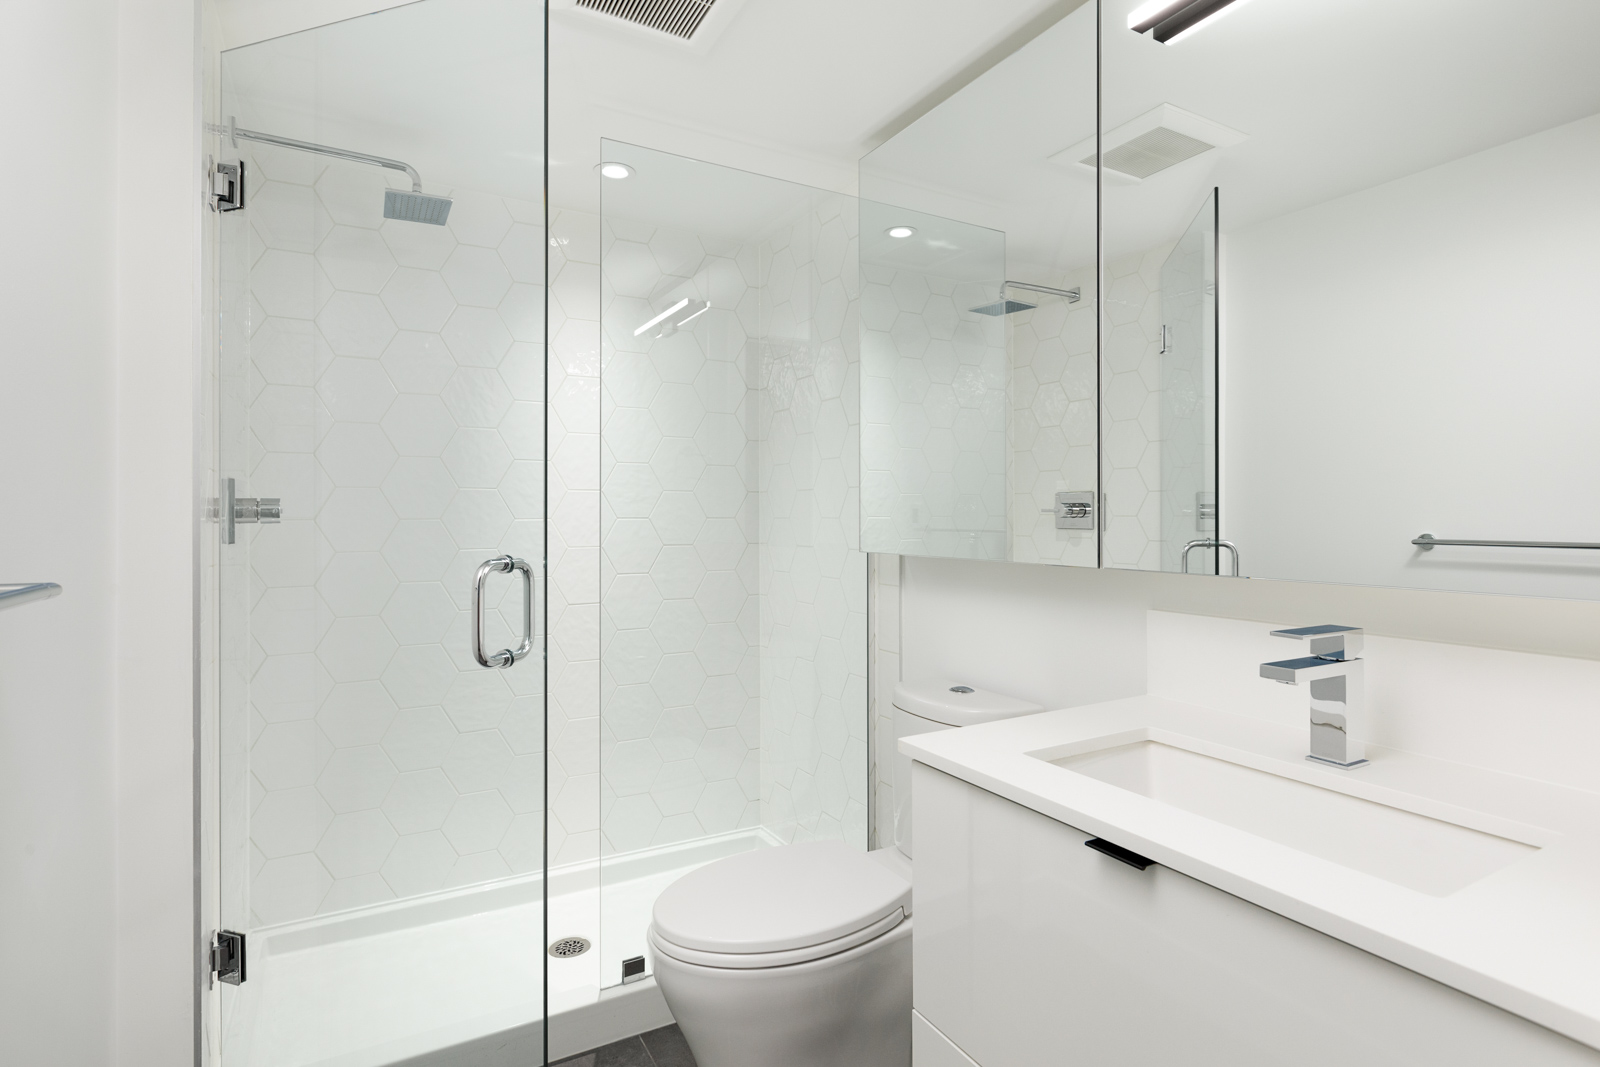 Bathroom with walk-in shower in Vancouver rental condo.